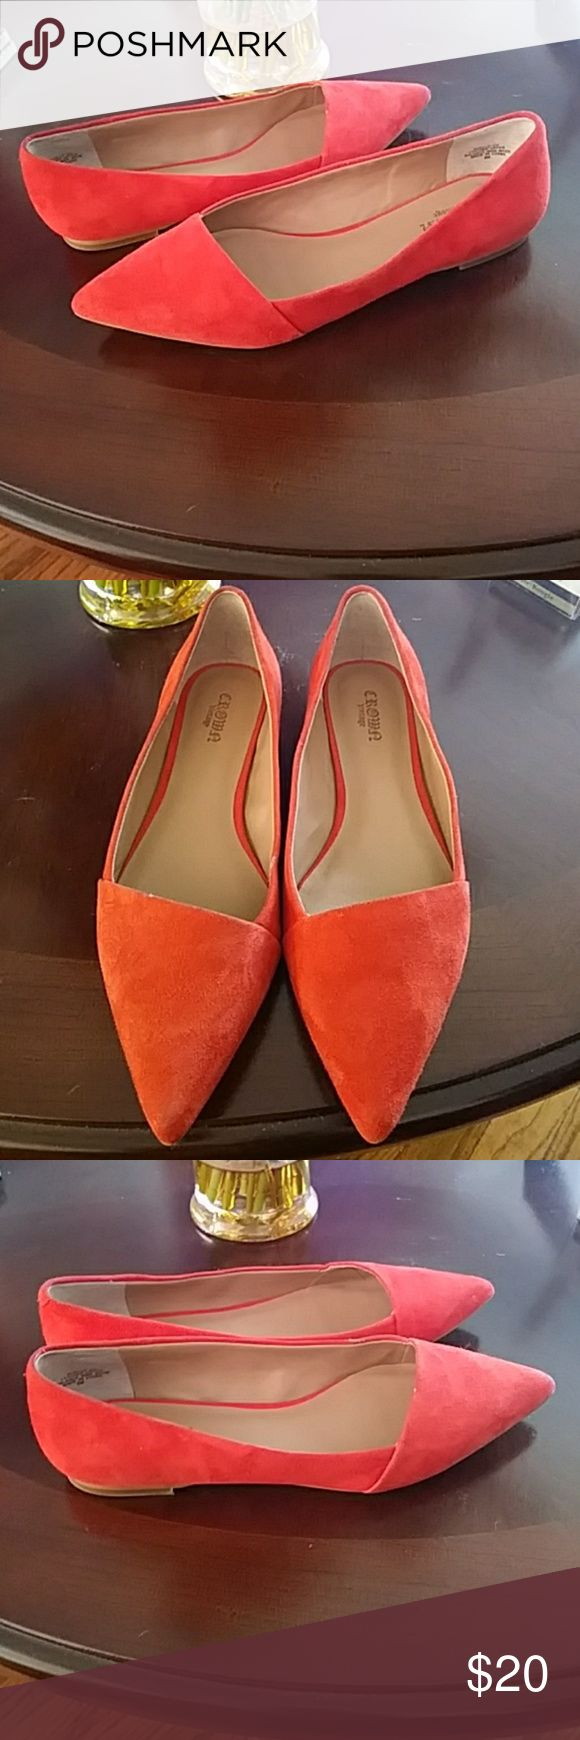 ❤Nwot Beautiful Vintage pointed toe Coral Flats!! These flats are perfect for Spring & Summer..The Color is bold & very Vibrant!!! These would pair perfect with anything dresses, Skirts, Shorts!! Perfect Shoe made out of Suede & Leather..   No Discount *Firm on Price* Crown Vintage Shoes Flats & Loafers